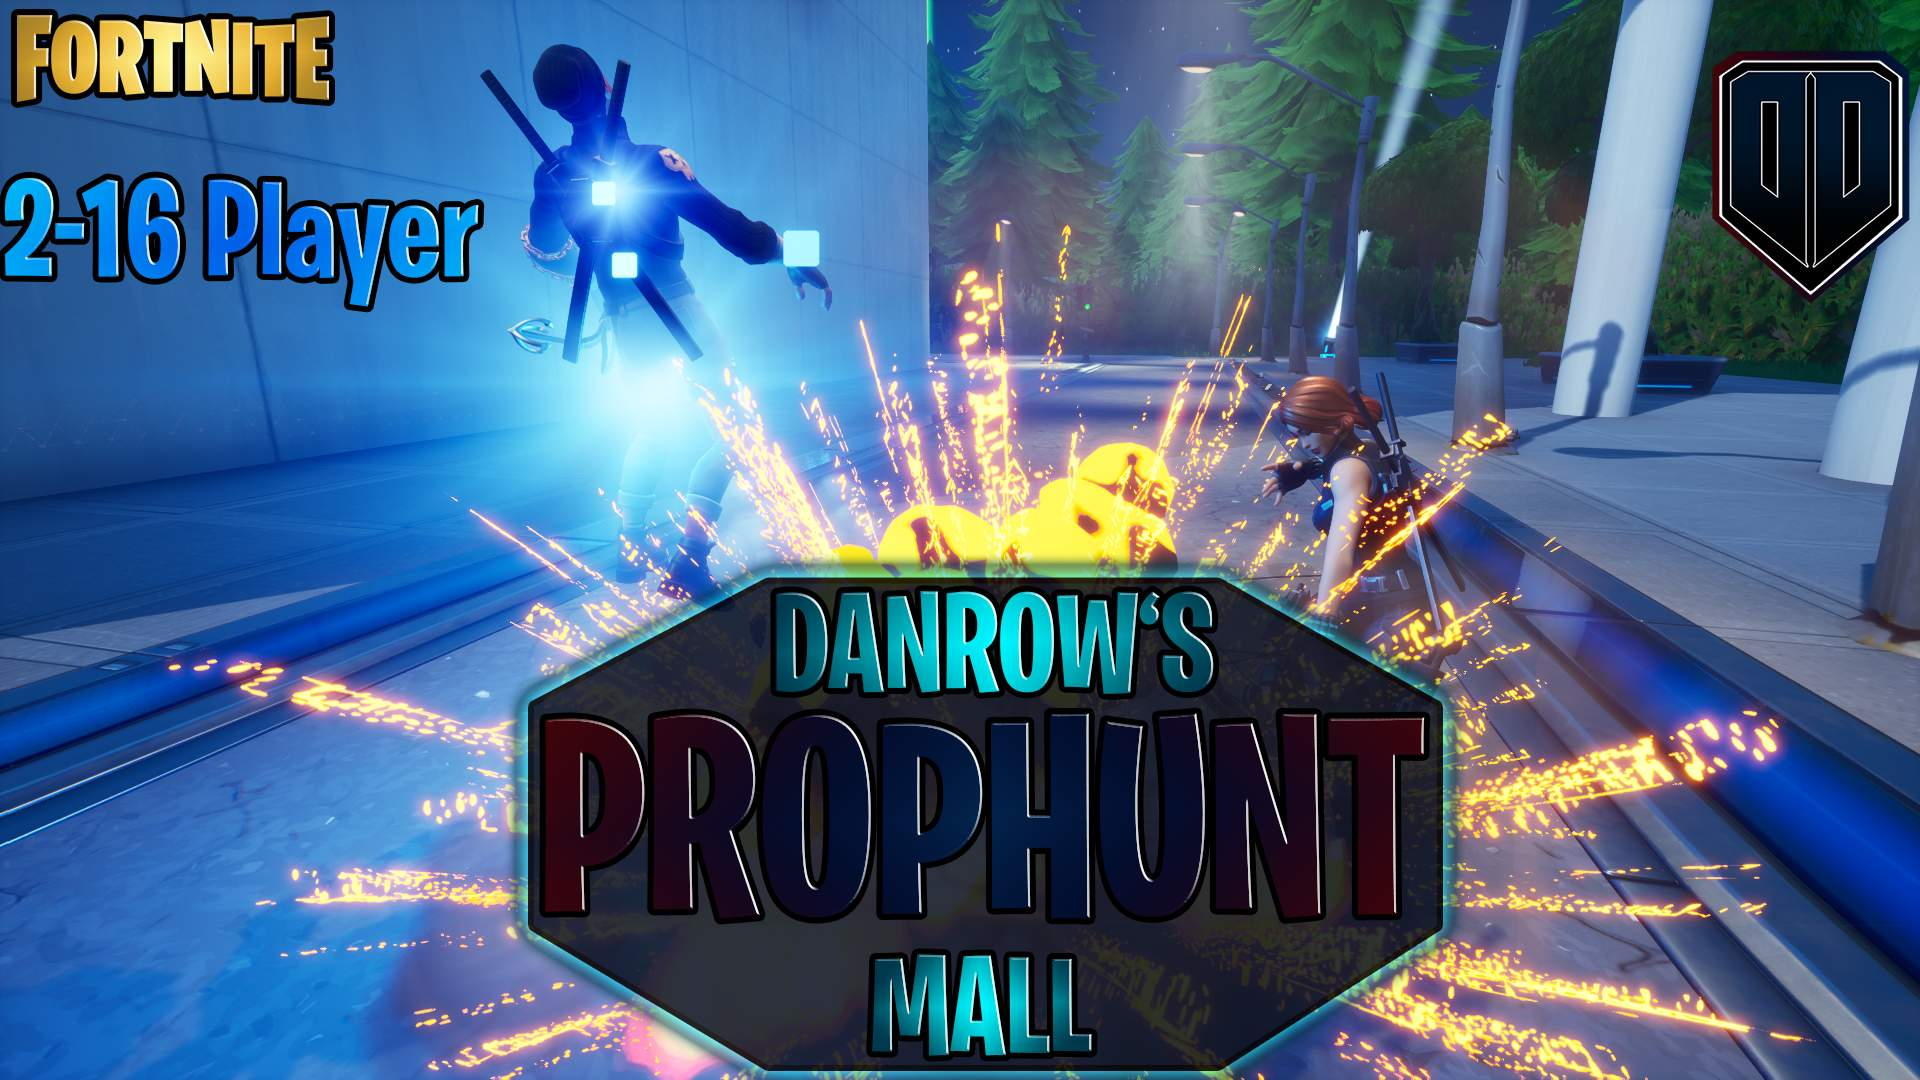 PROPHUNT MALL